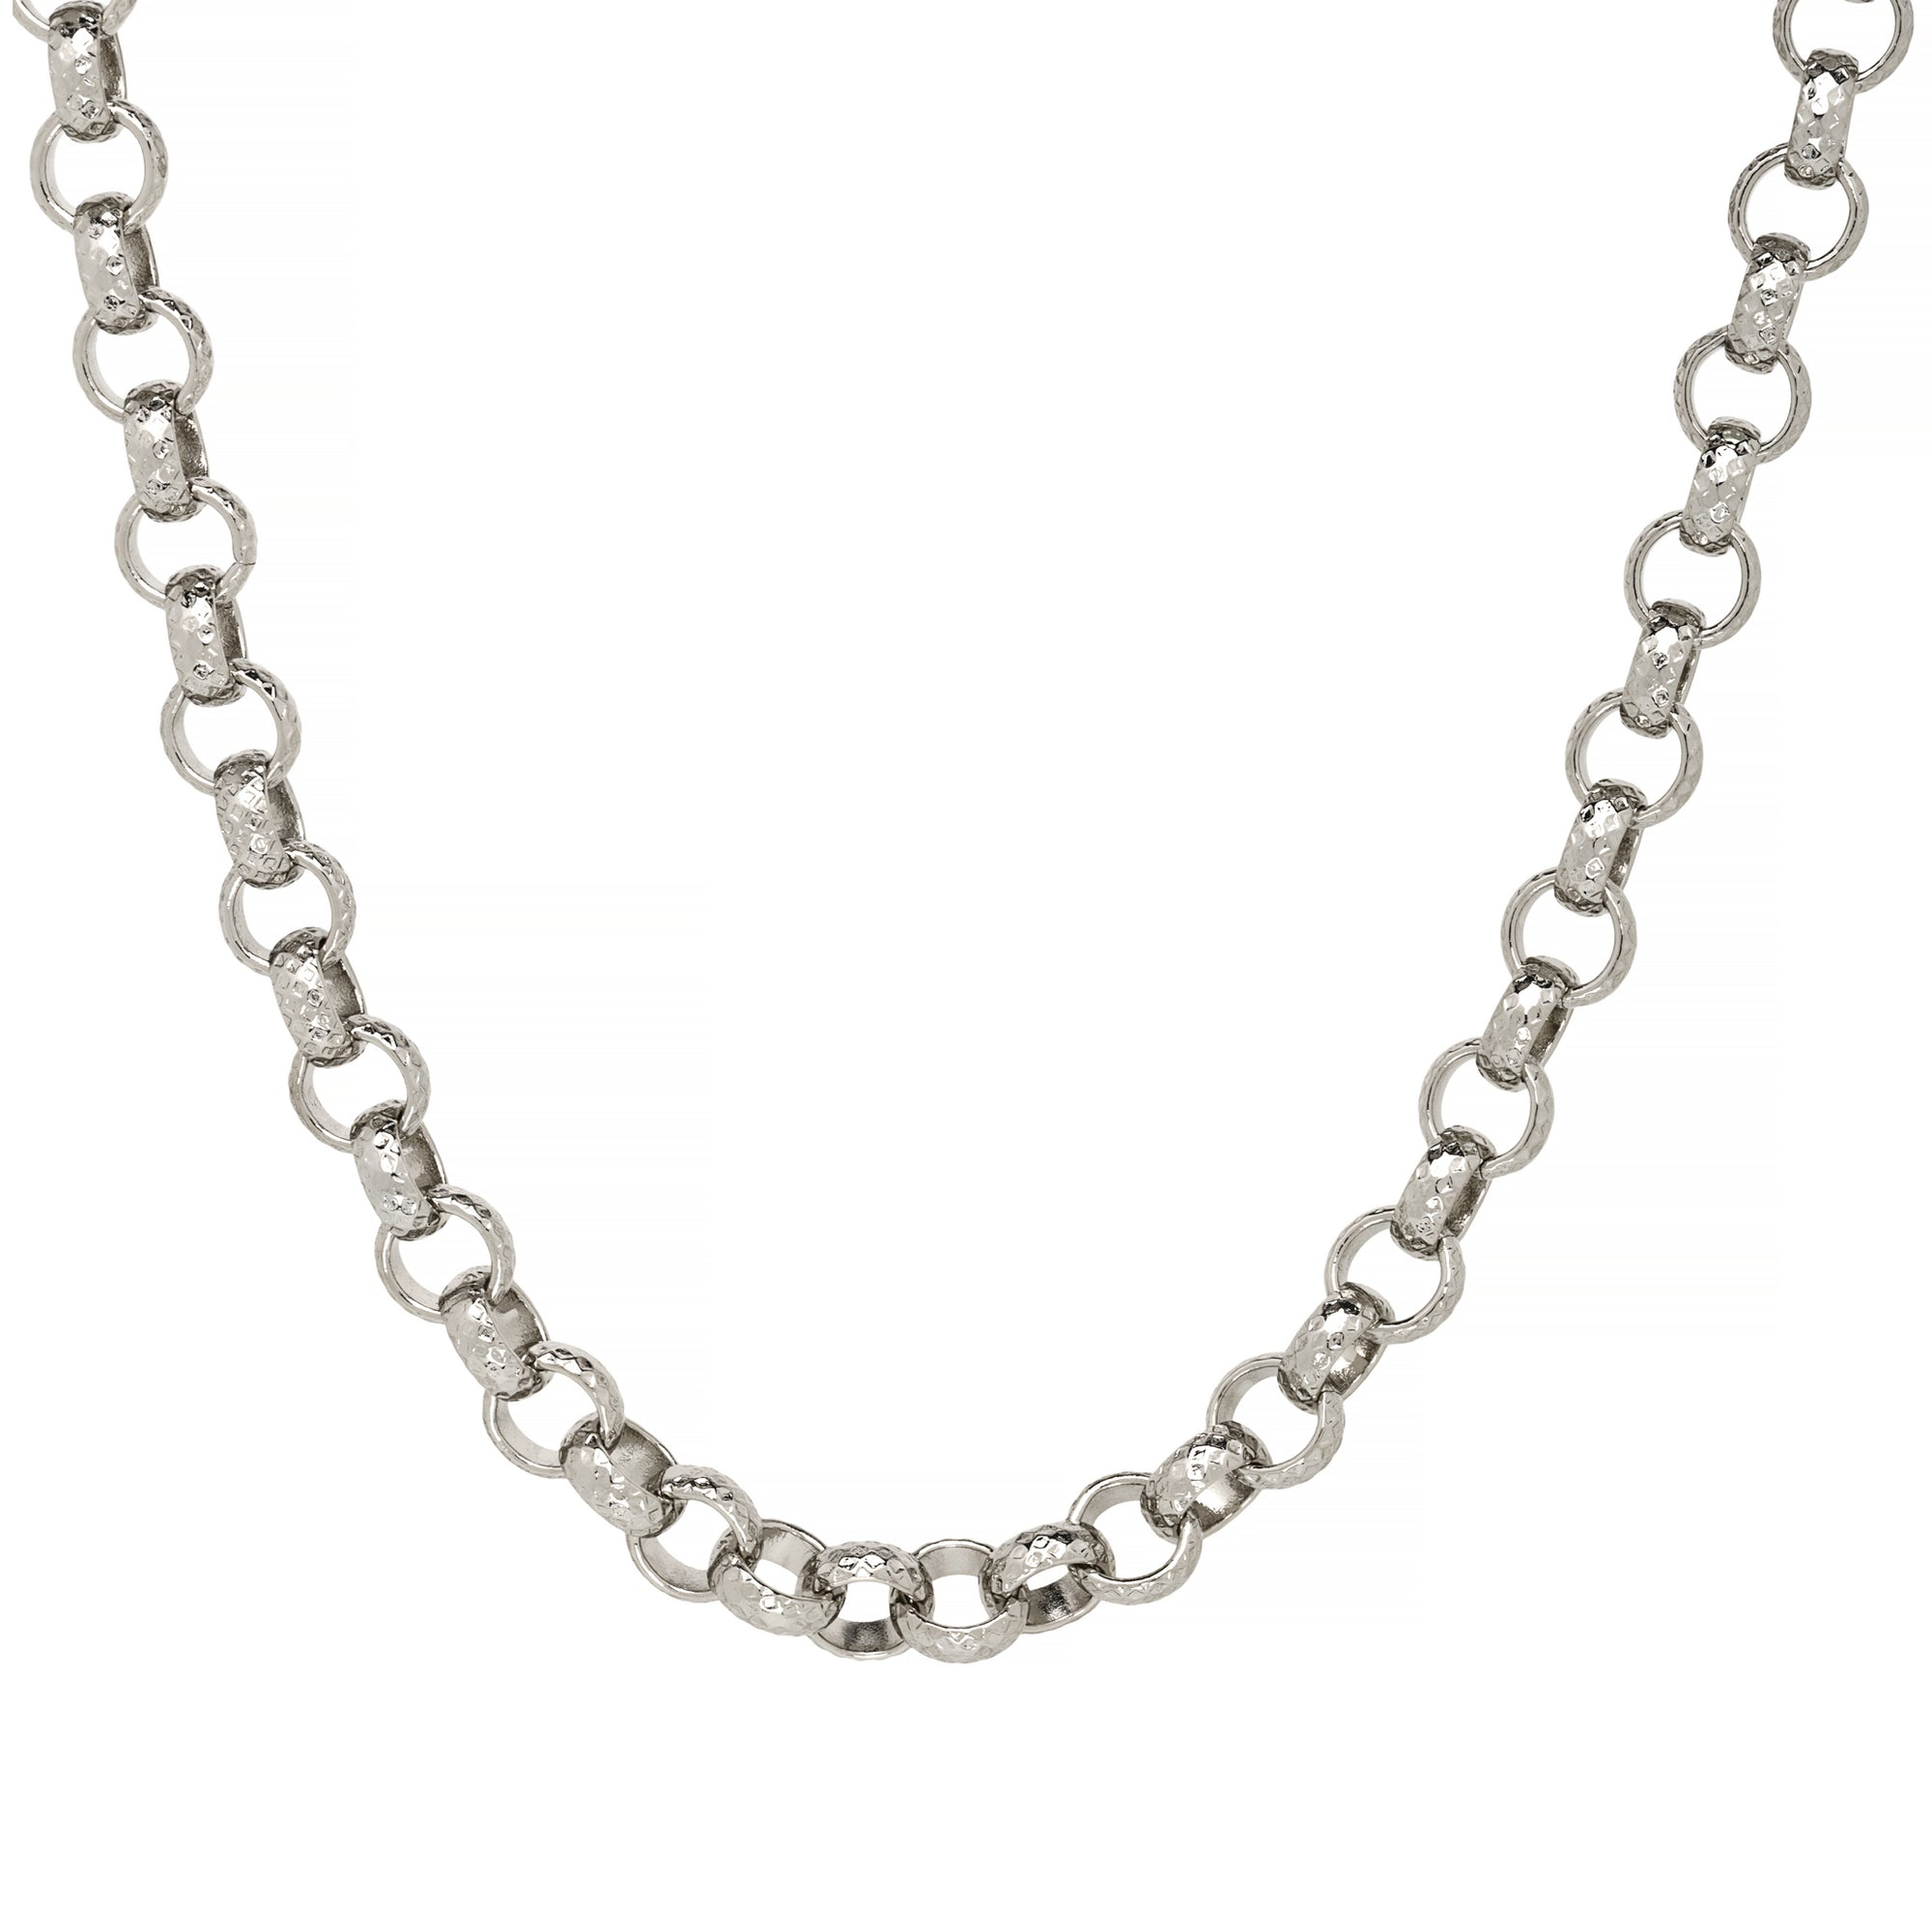 8mm Sterling Silver Filled Diamond Cut Pattern Belcher Chain-Chain-Bling King-24-inch Chain-Bling King